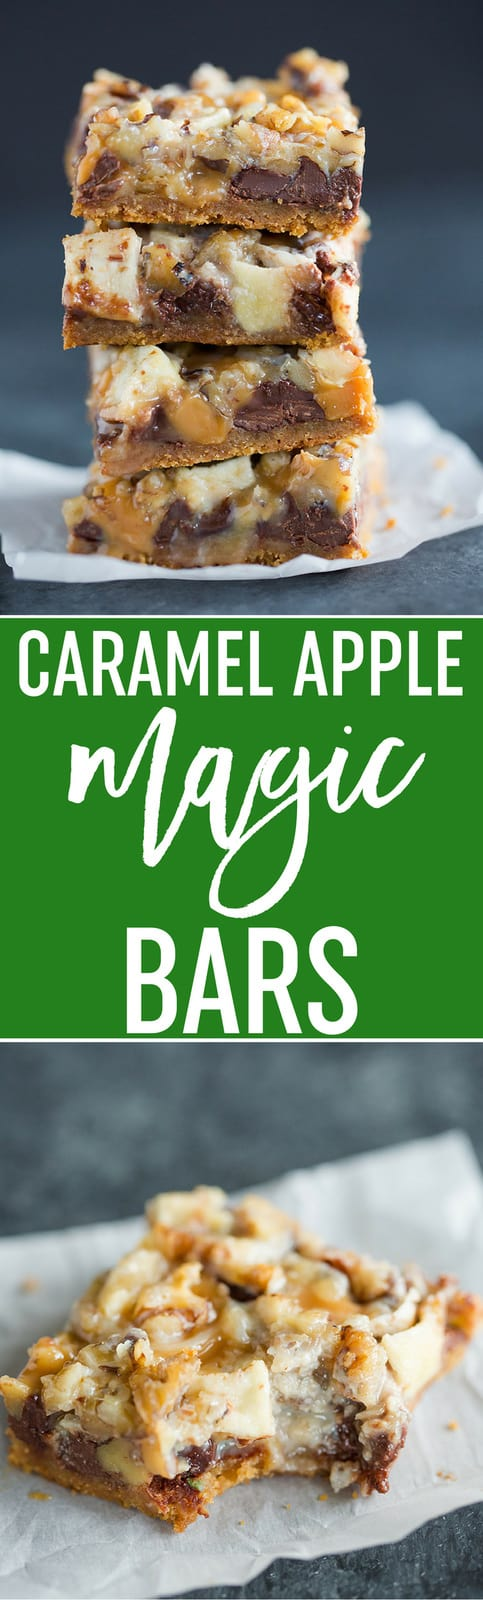 Caramel Apple Magic Bars feature a graham crust, chocolate chips, chopped up caramels, chopped apples, and walnuts. An easy must-make recipe for fall! Sponsored by @eaglebrand. #bars #bardesserts #magicbars #dreambars #sevenlayerbars #fall #baking #recipe #easy #thanksgiving #apples #chocolatechips #caramel #ad